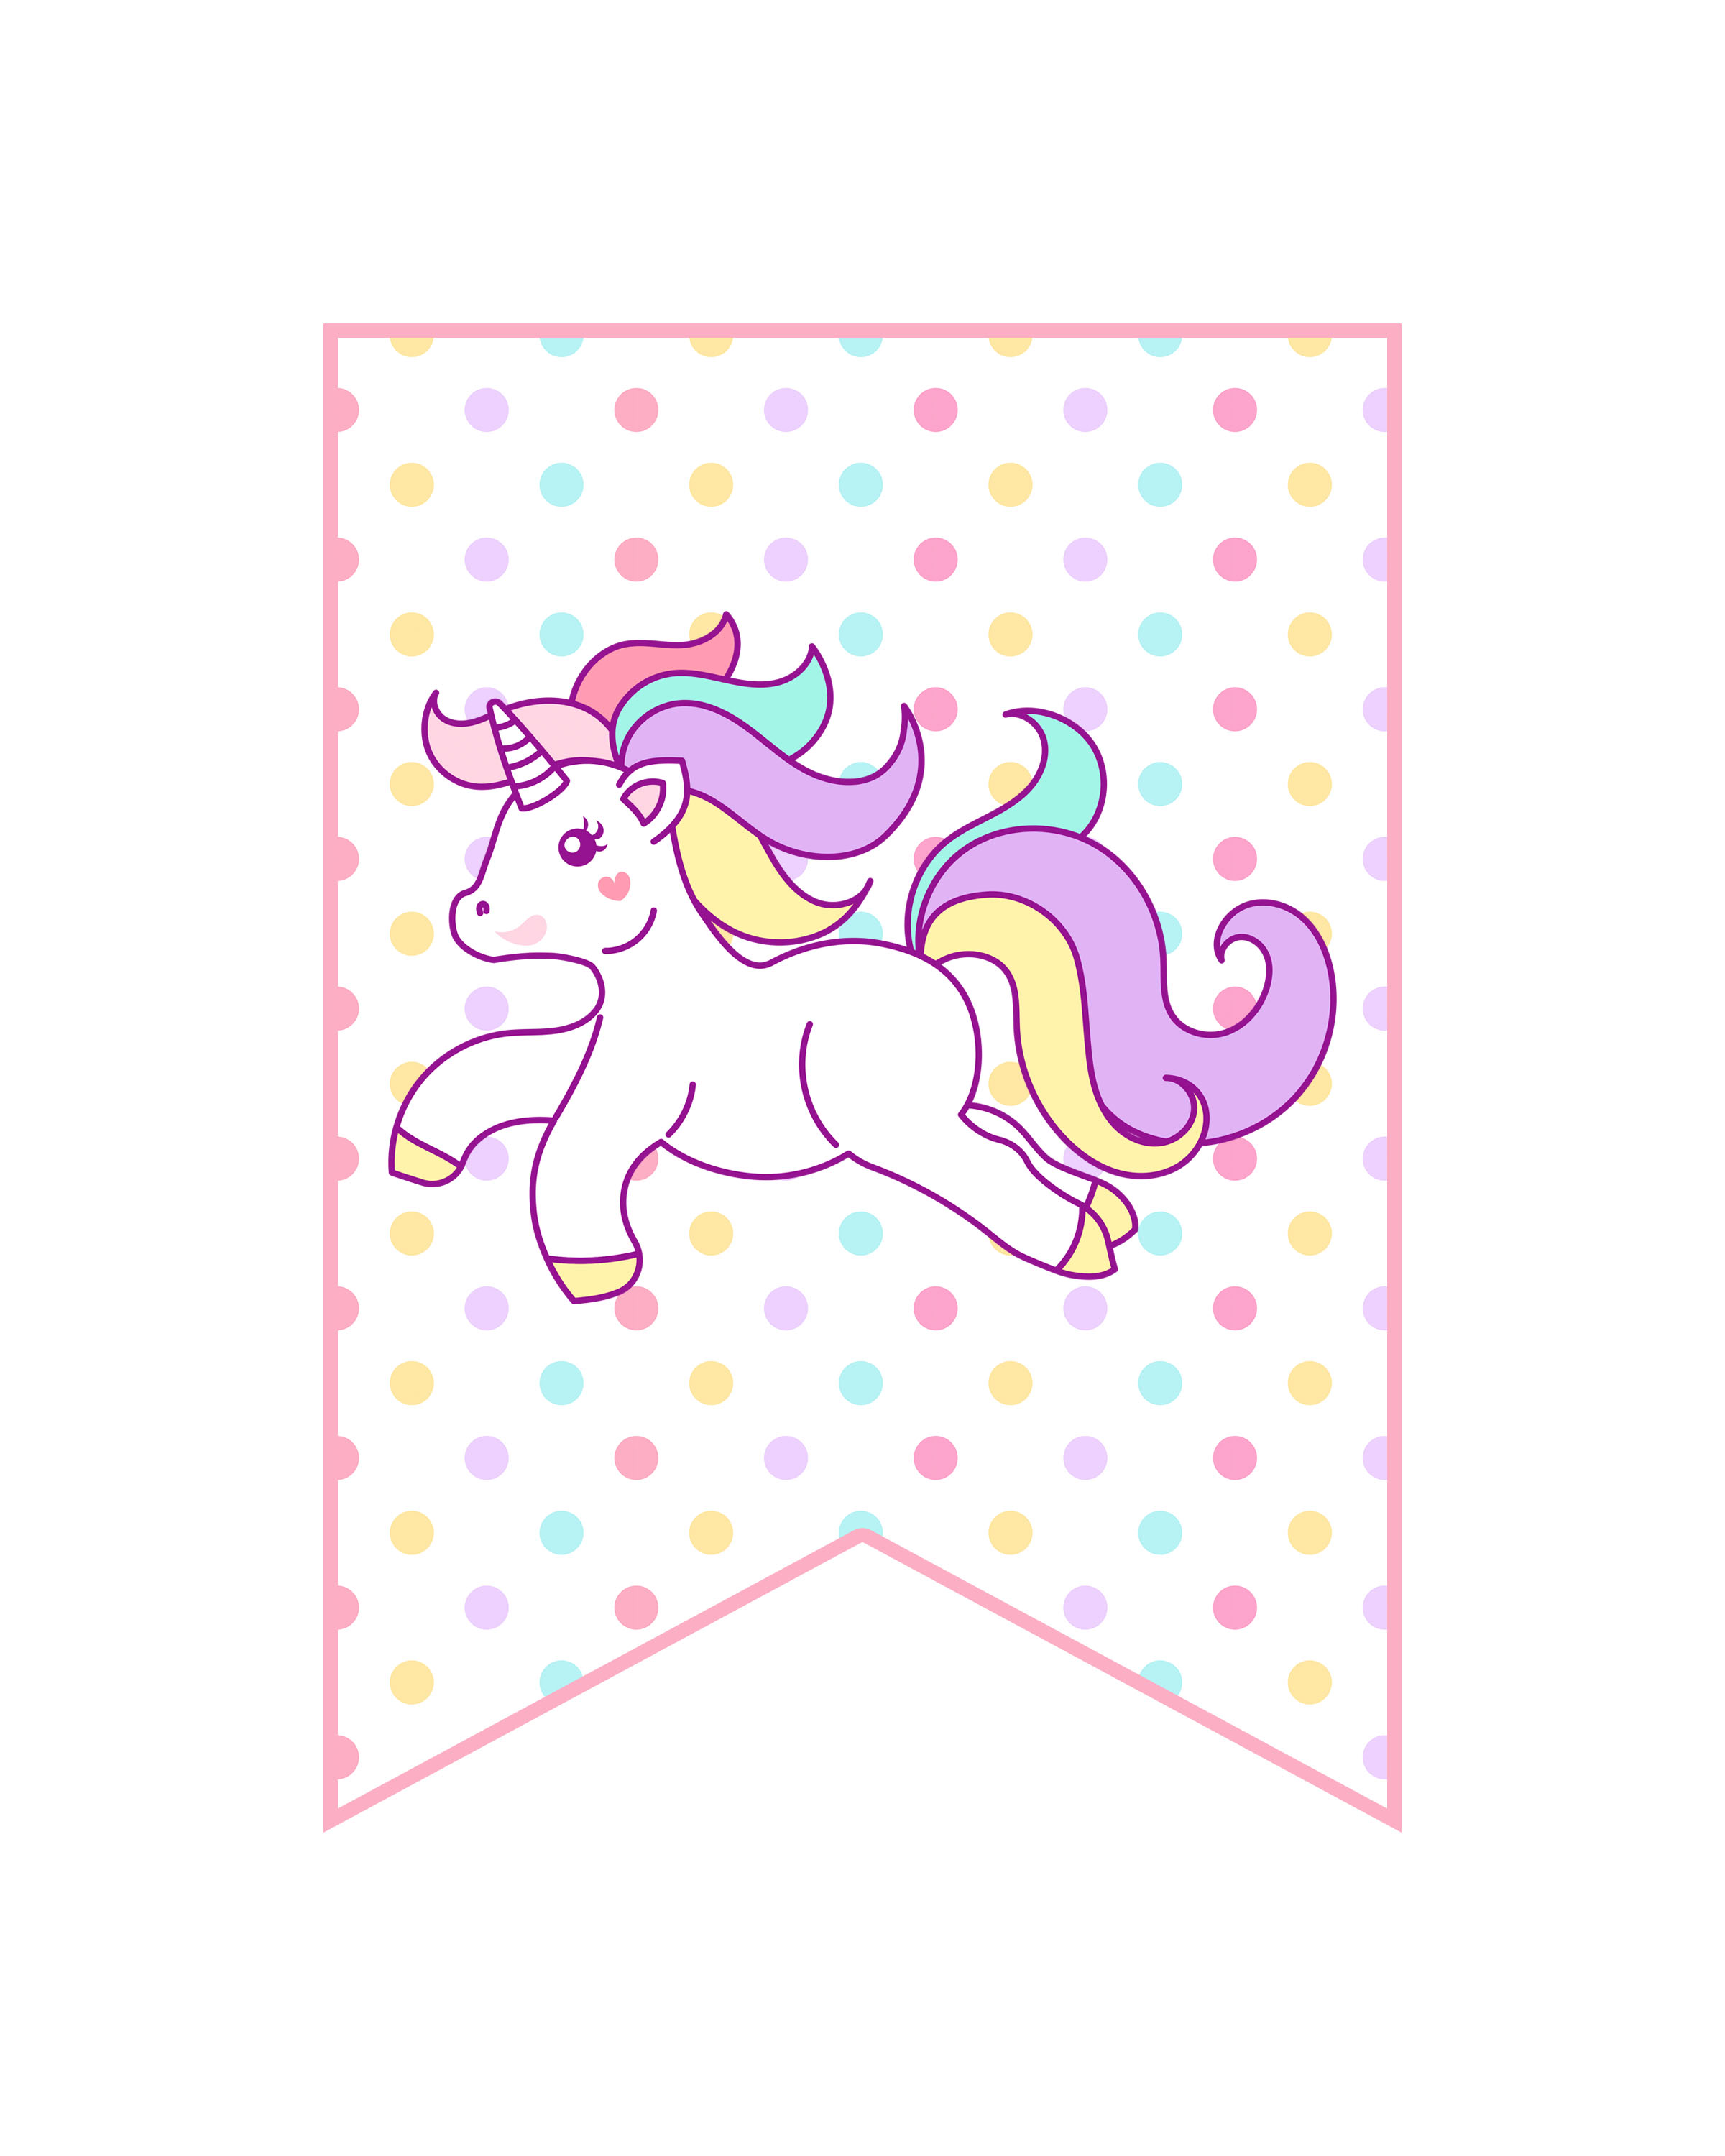 graphic regarding Free Printable Unicorn Pictures named Absolutely free Printable Unicorn Celebration Decorations Pack - The Cottage